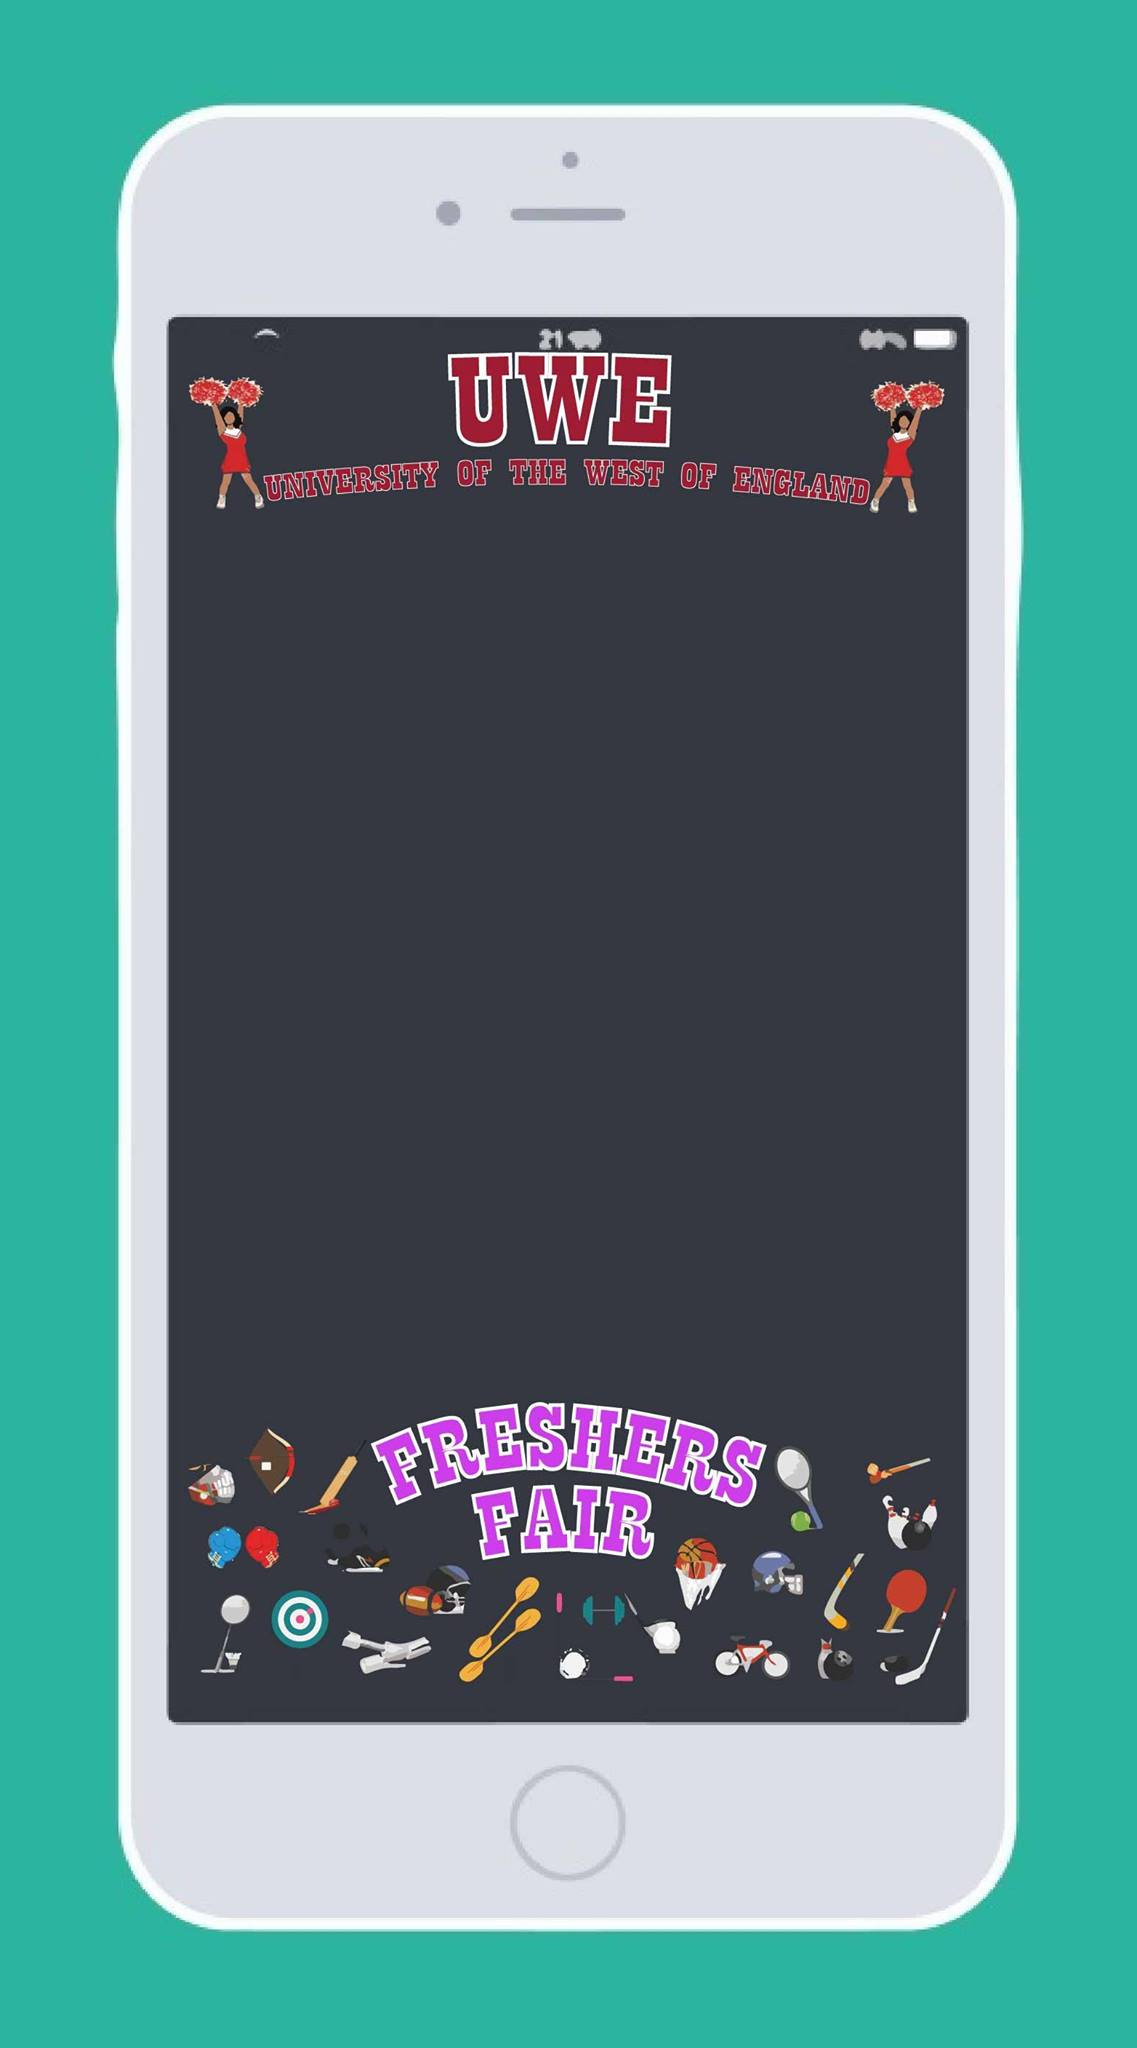 UWE Freshers fair 2016 Snapchat Event filter | designs